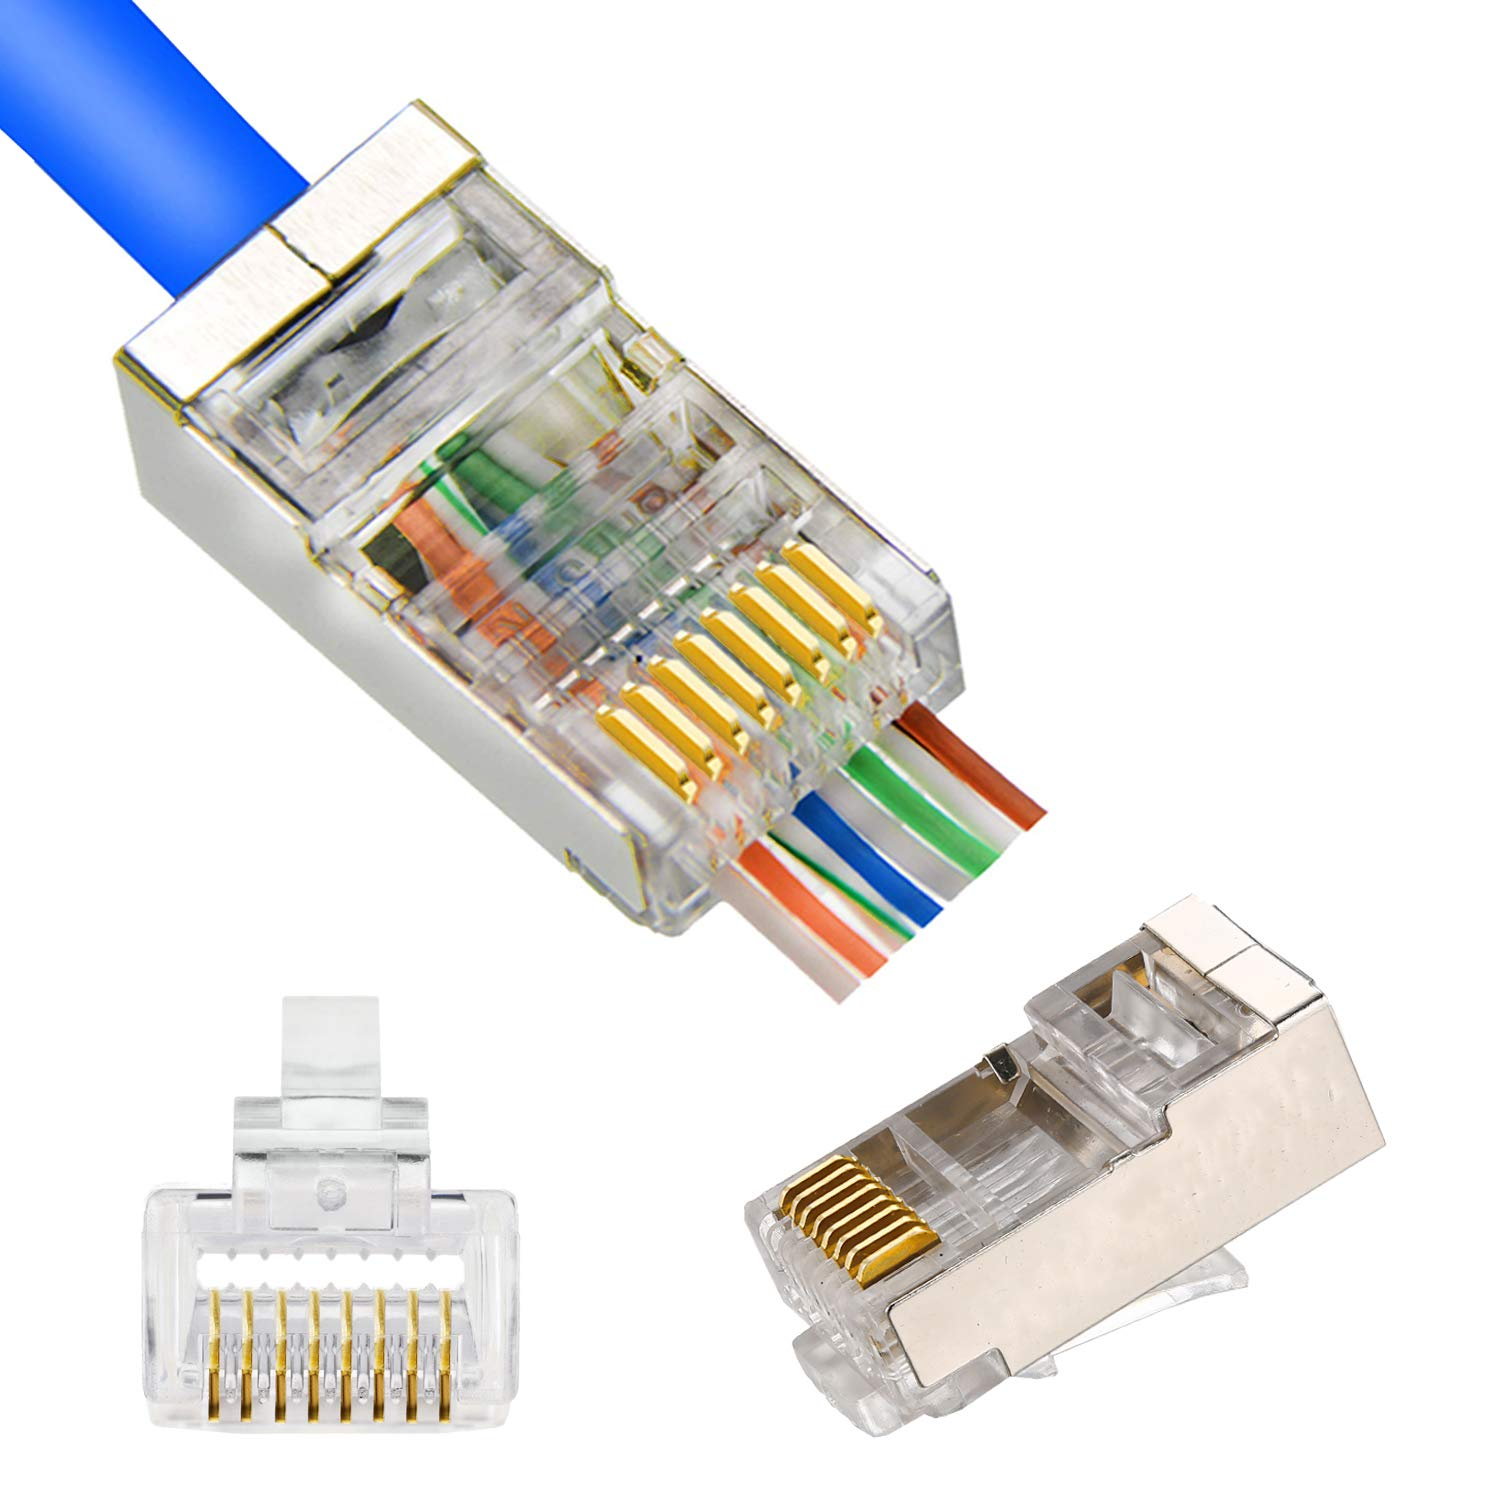 RJ45 CAT5 CAT6 Shielded Connector End Pass Through Gold Plated Ethernet 8P8C 3u Modular Plug 20Pack